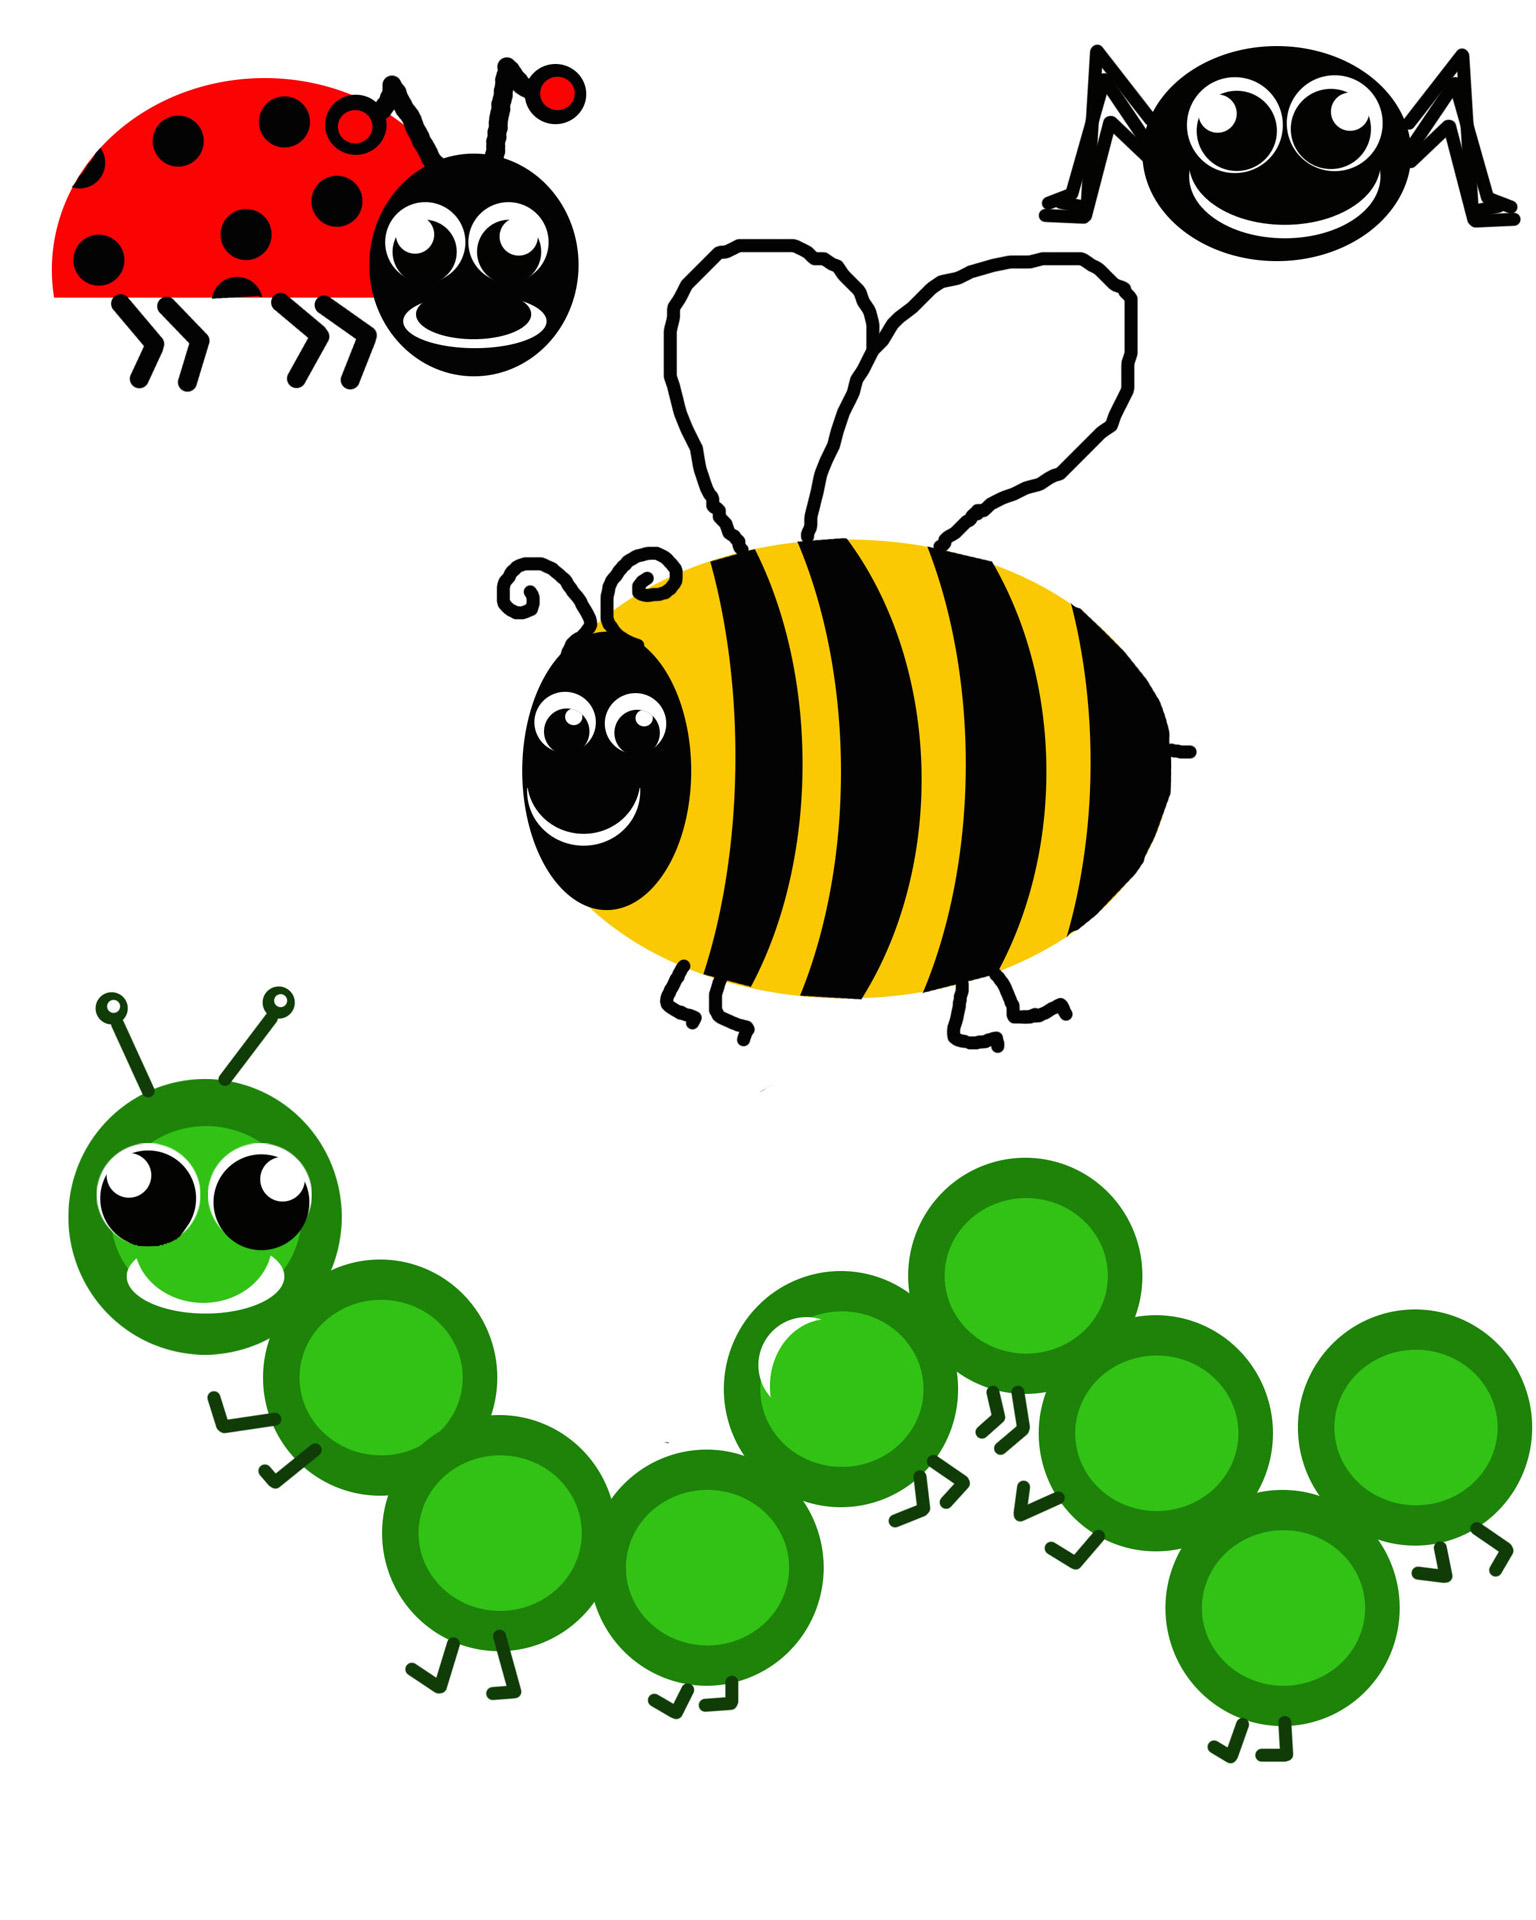 centipede clipart at getdrawings com free for personal use rh getdrawings com